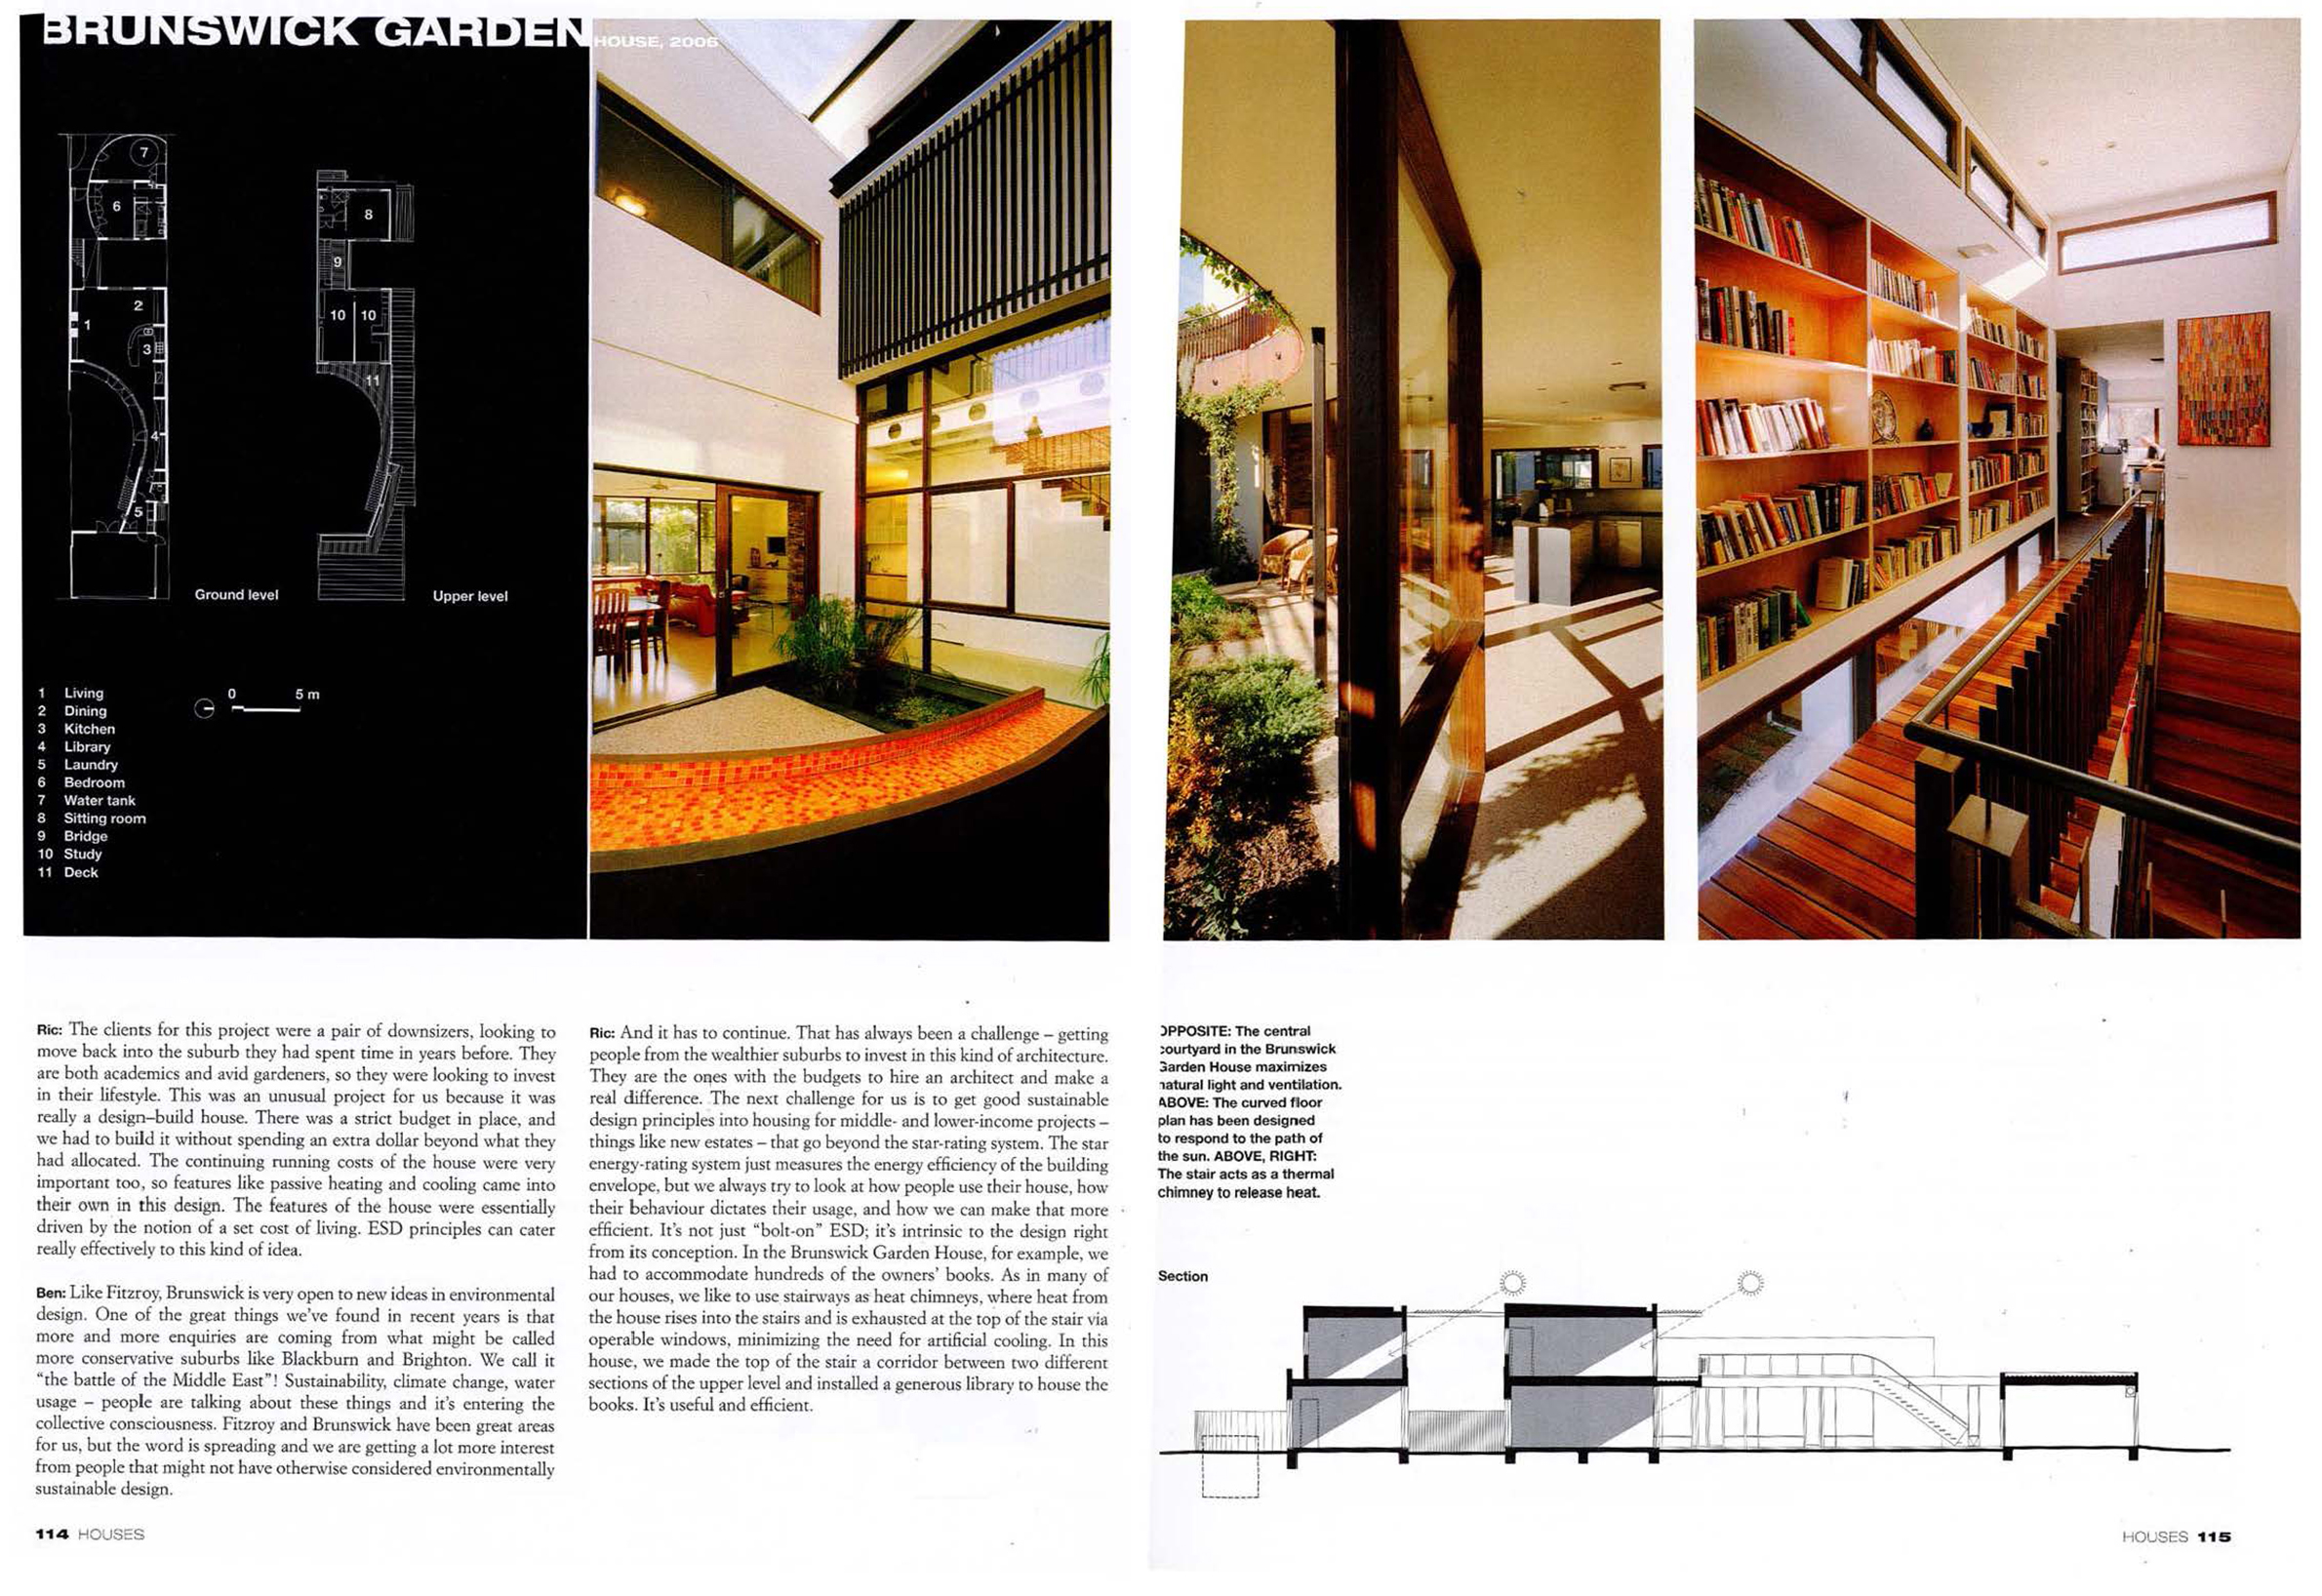 2008_Houses Magazine_Eco-Chic Abodes_Page_6-7.jpg